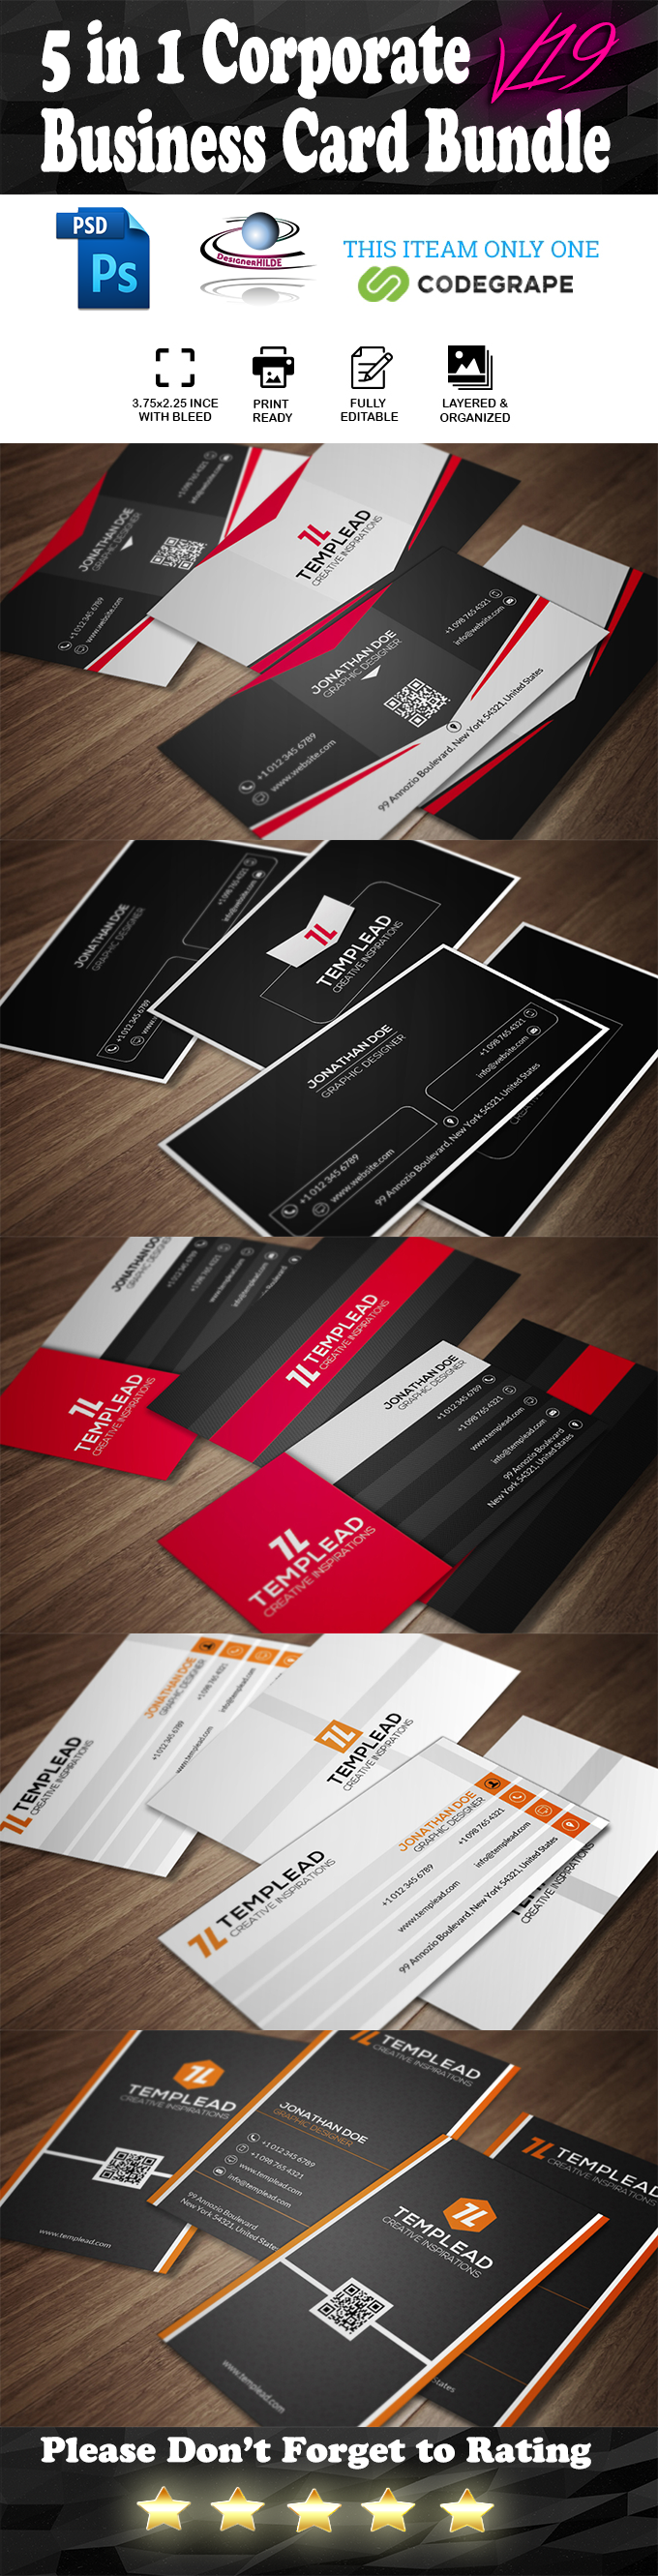 5 in 1 Corporate Business Card Bundle V. 19